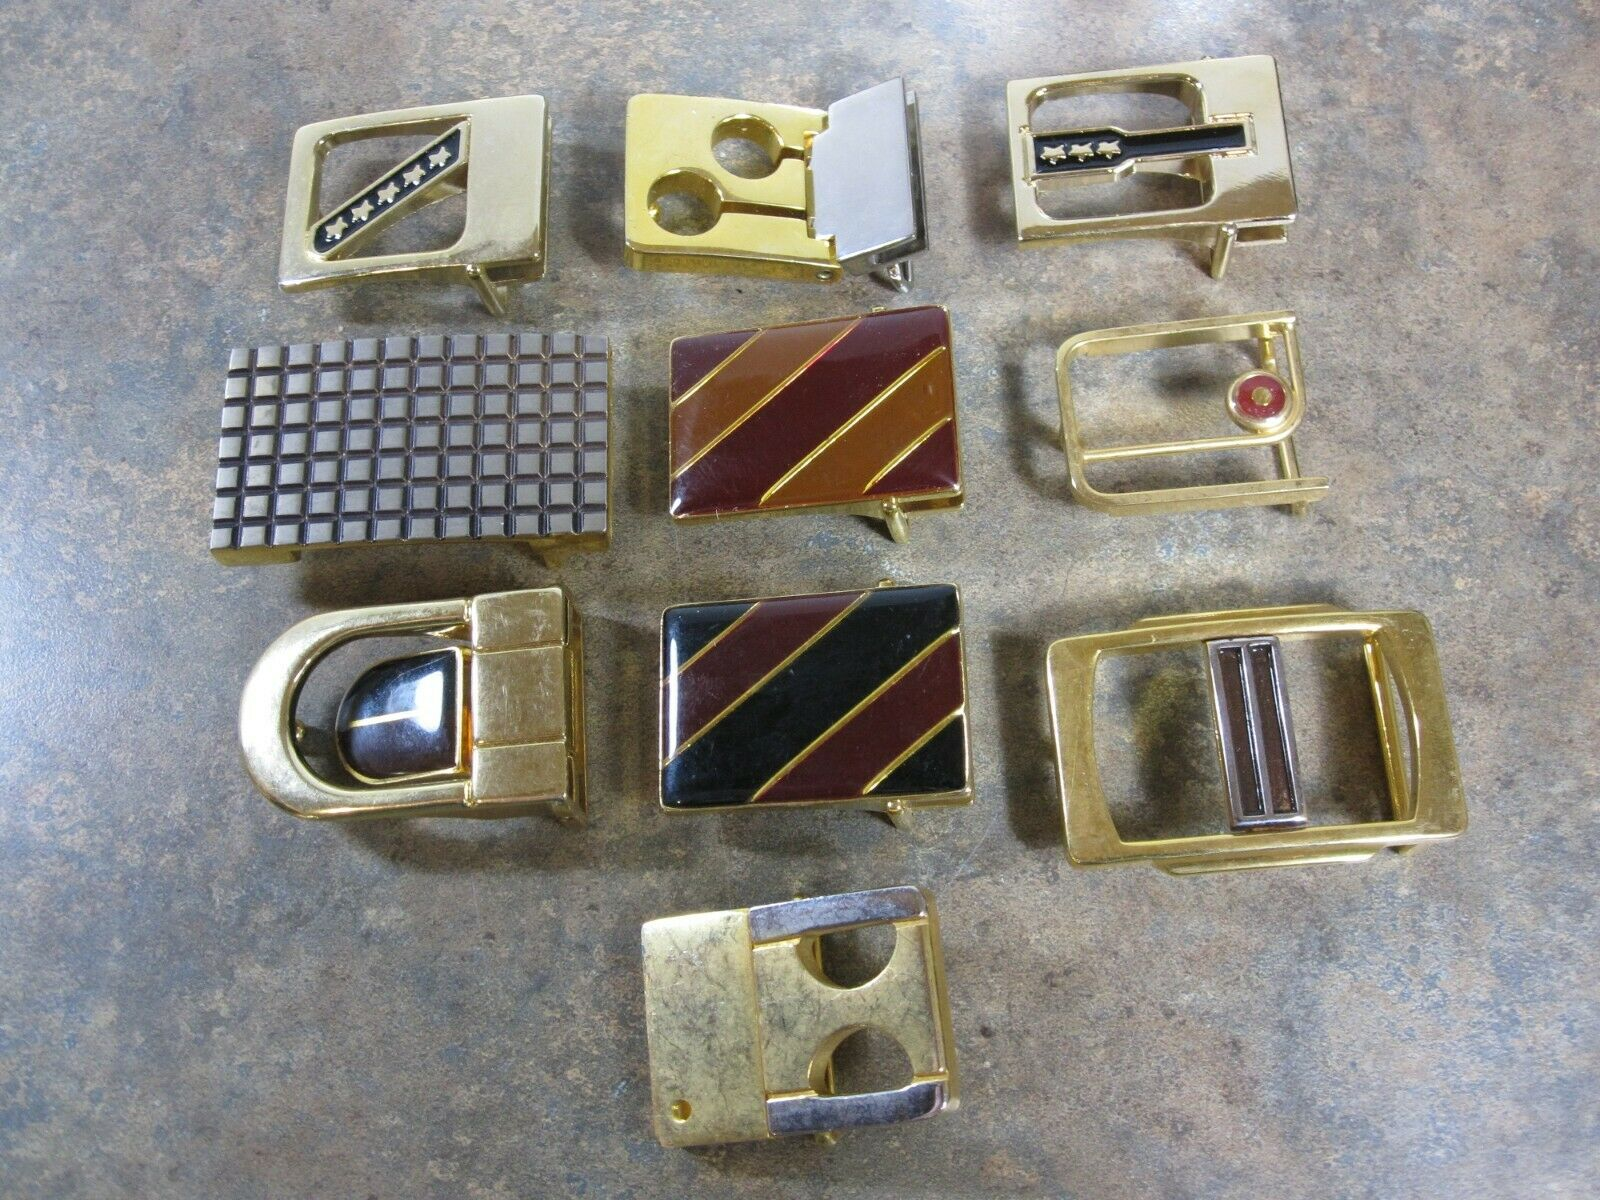 Lot of 10 Vintage Gold Tone Belt Buckles VARIOUS STYLES - Made in Italy/Spain #1